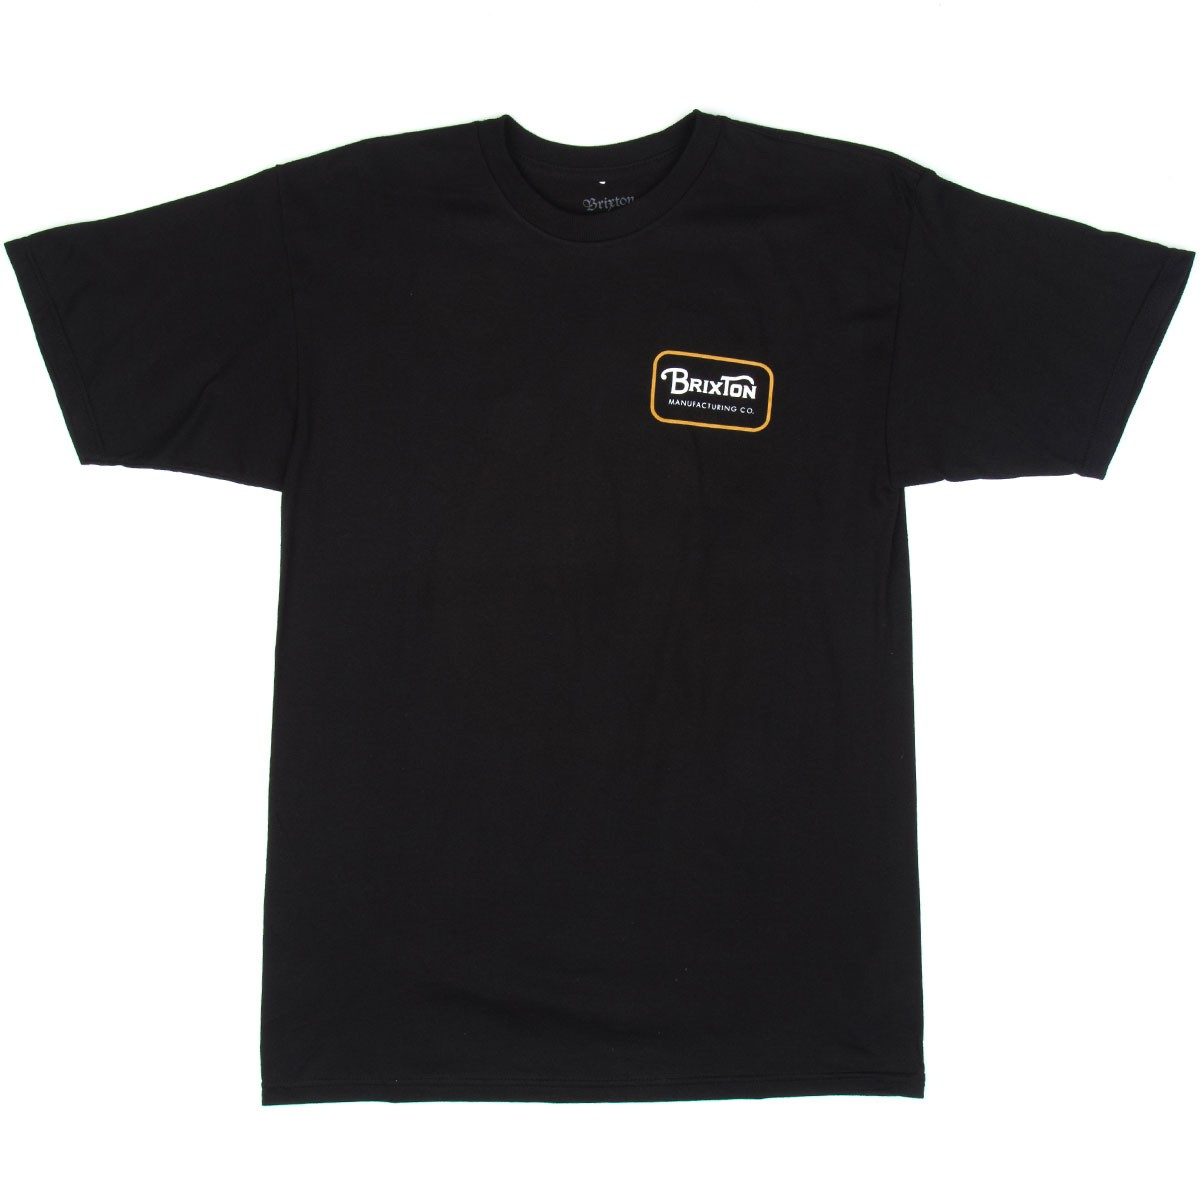 Brixton Grade Standard T-shirt - Black/Orange